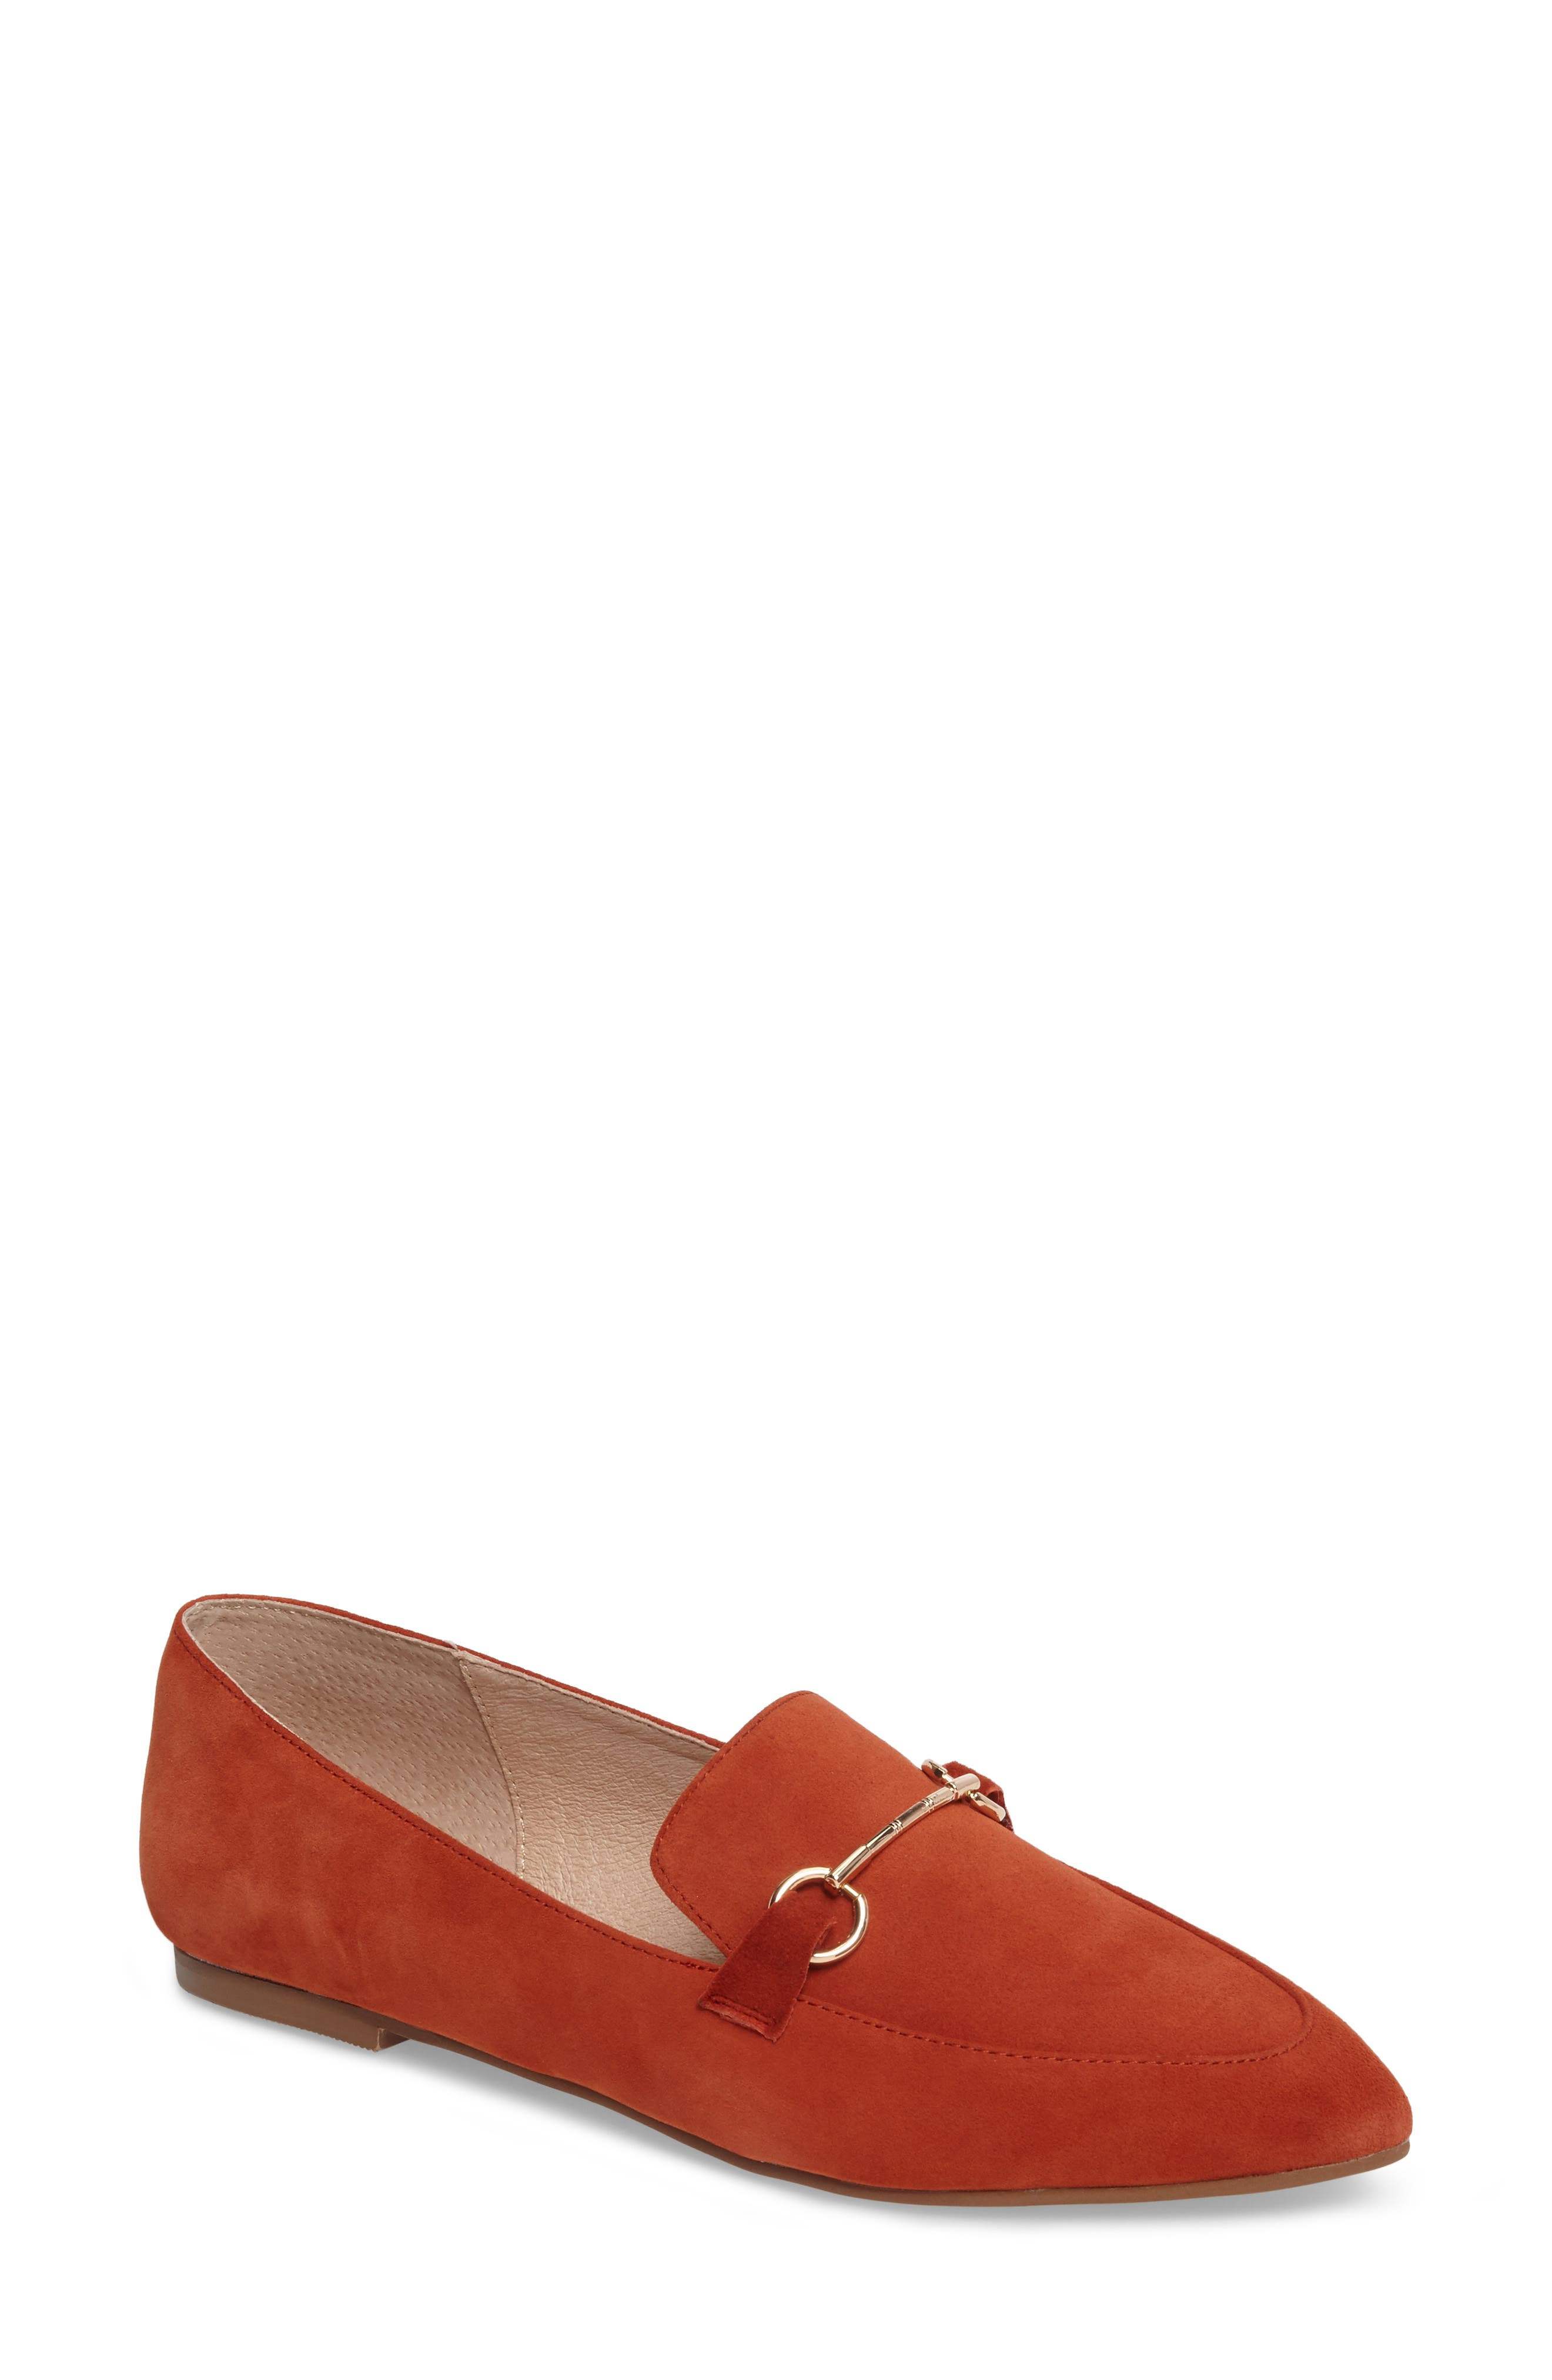 Alternate Image 1 Selected - Kristin Cavallari Cambrie Loafer Flat (Women)